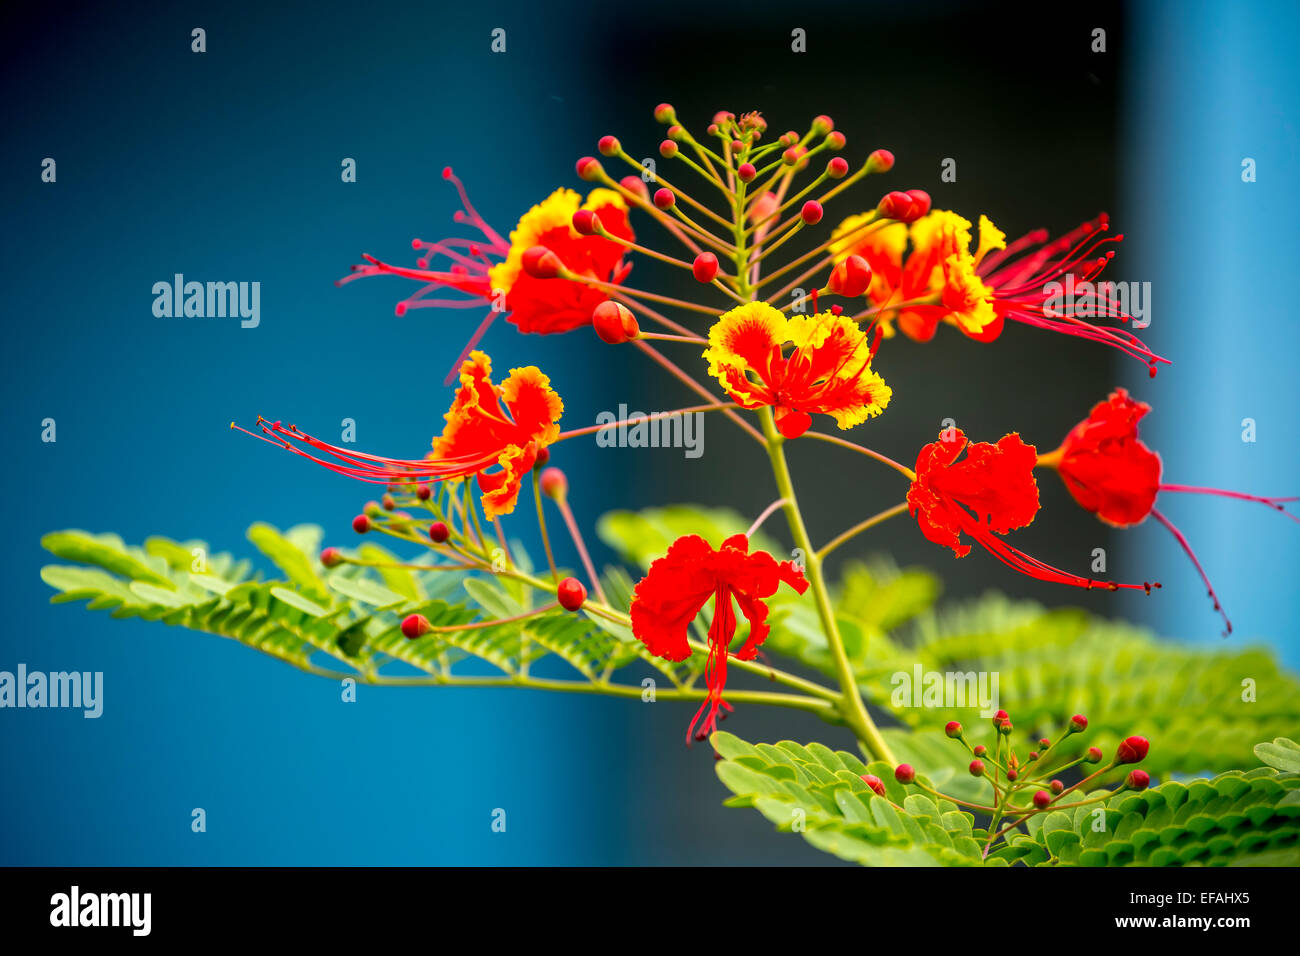 Poinciana (Caesalpinia pulcherrima), with red and yellow flowers, in a flower garden, Vinales Valley, Viñales - Stock Image